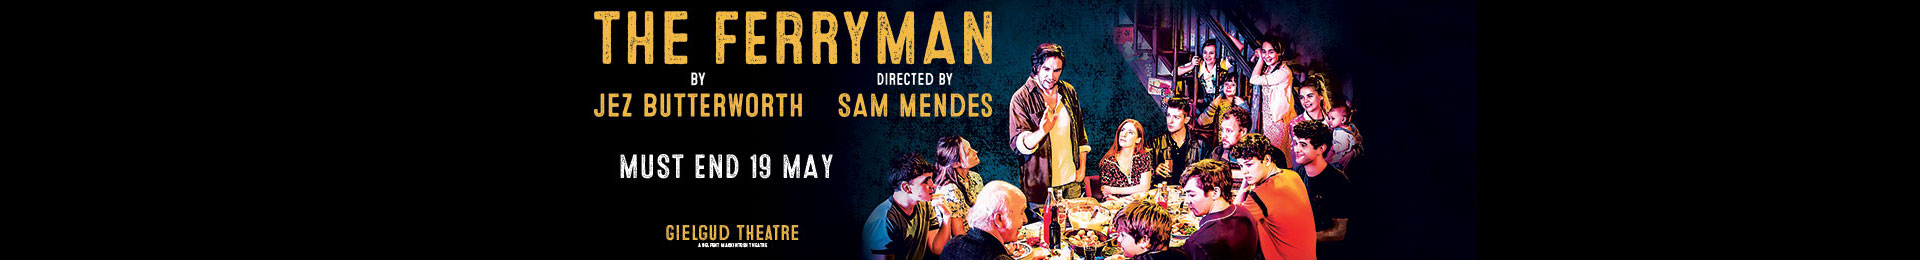 The Ferryman & Dinner at Planet Hollywood banner image